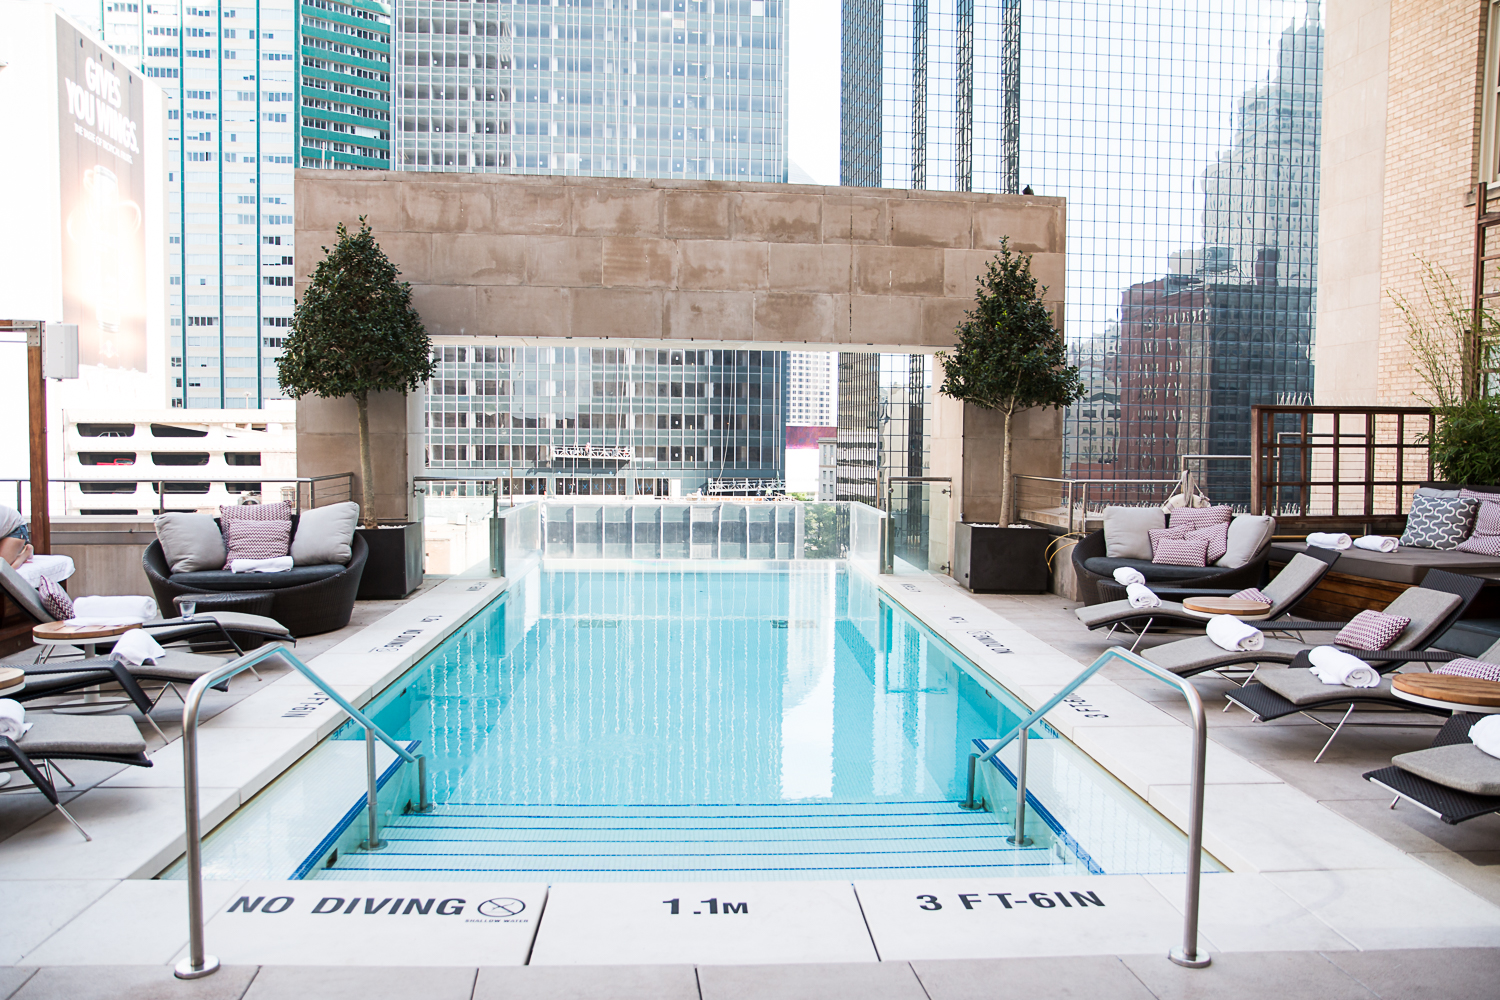 #rsthecon: Dallas Travel Diary   The Daily Dose